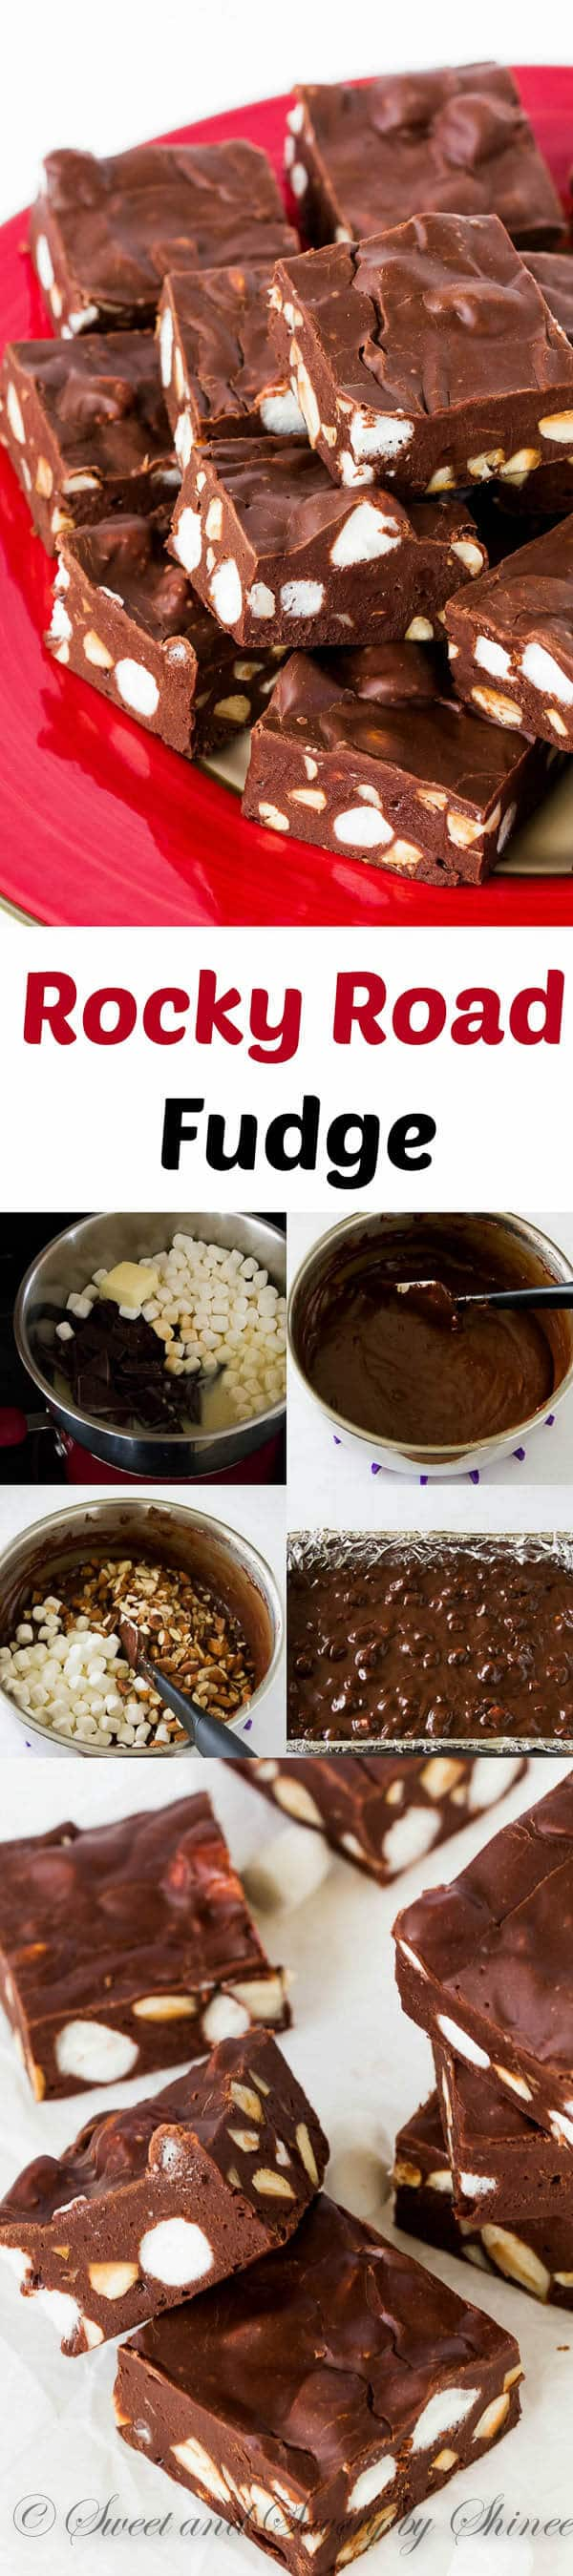 fudge rocky road fudge blue eyed bakers blue eyed bakers rocky road ...